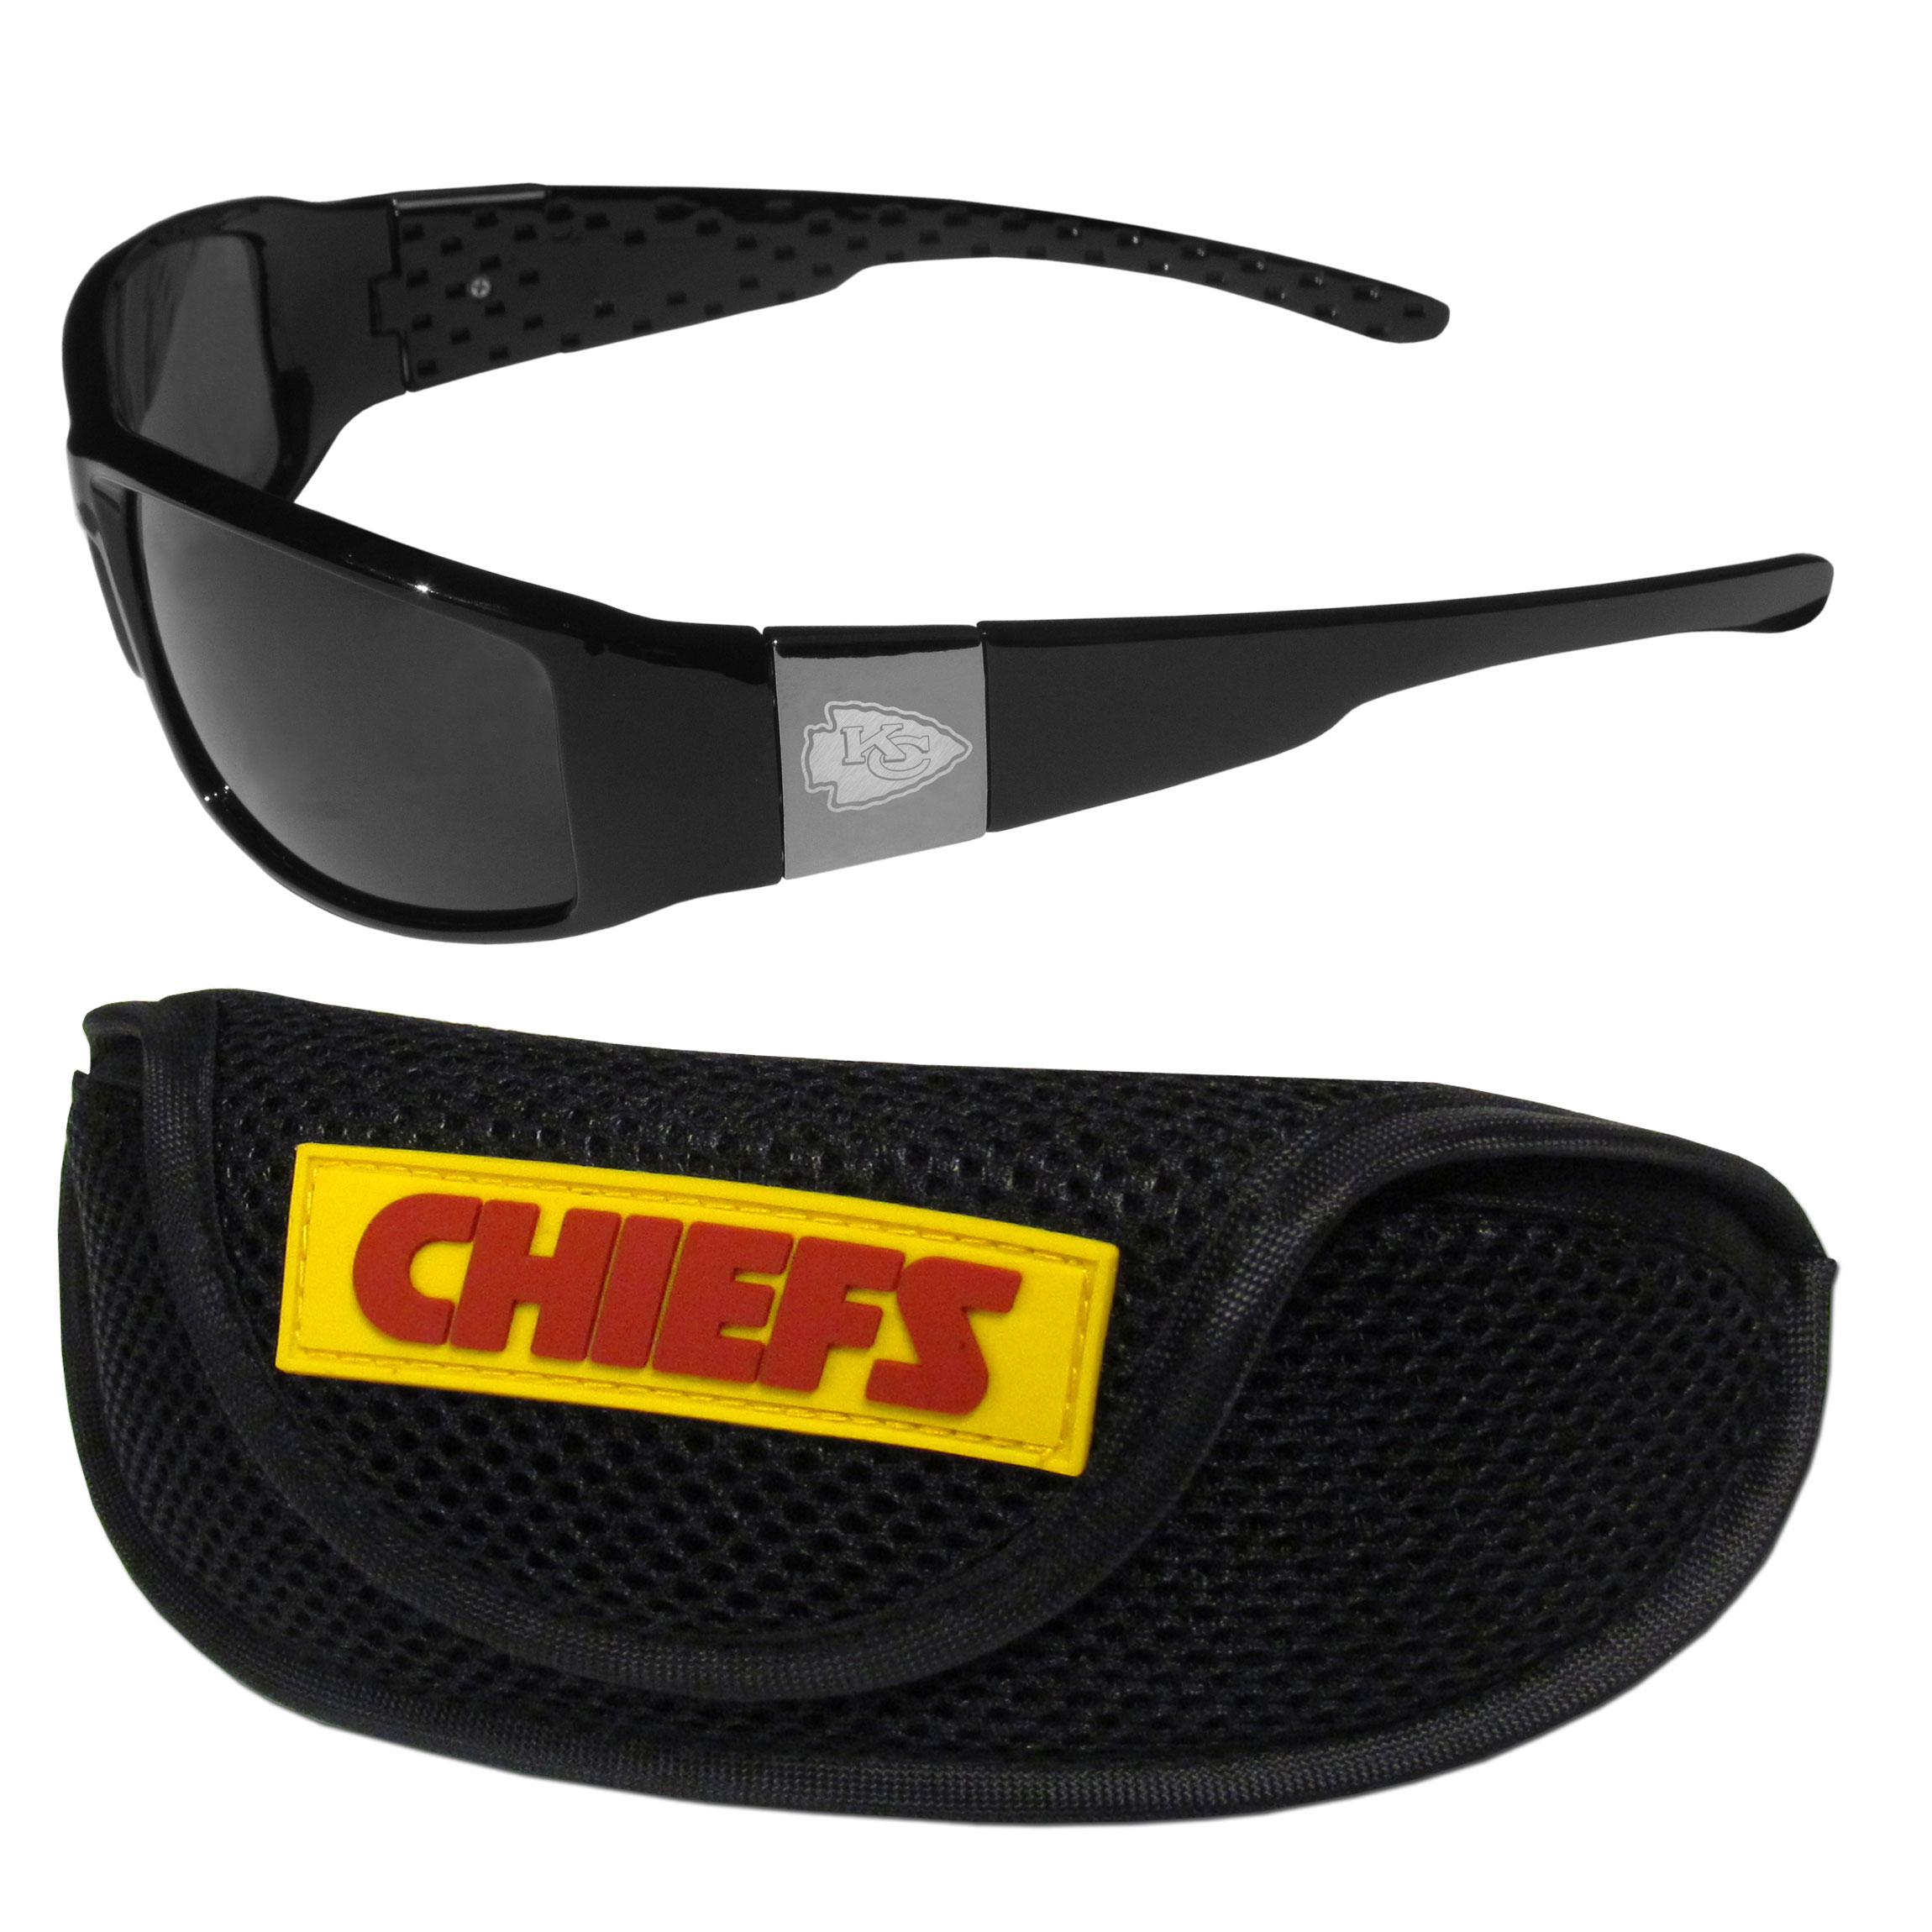 Kansas City Chiefs Chrome Wrap Sunglasses and Sports Case - Our sleek and stylish Kansas City Chiefs chrome wrap sunglasses and our sporty mesh case. The sunglasses feature etched team logos on each arm and 100% UVA/UVB protection. The case features a large and colorful team emblem.